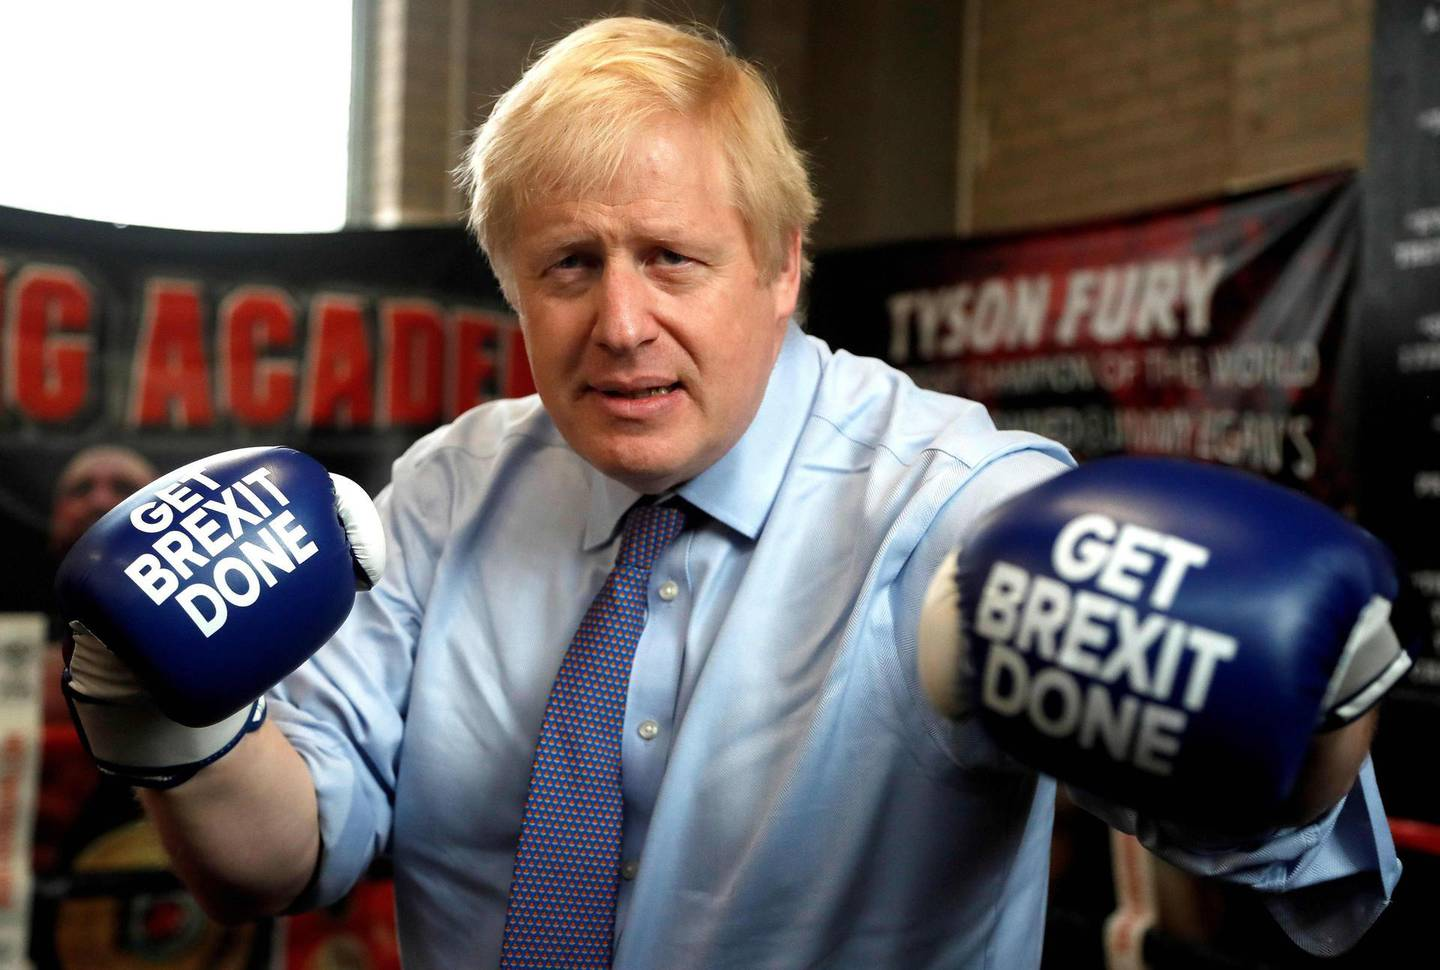 """(FILES) In this file photo taken on November 19, 2019 Britain's Prime Minister and leader of the Conservative Party, Boris Johnson wears boxing gloves emblazoned with """"Get Brexit Done"""" as he poses for a photograph at Jimmy Egan's Boxing Academy in Manchester north-west England on November 19, 2019. Electoral success, Brexit, a global health crisis that left him near death, divorce, engagement and even a new baby. Boris Johnson has had an eventful 12 months in anyone's book. Johnson, 56, marks his first anniversary as Britain's prime minister on Friday, having had what one lawmaker described to the Guardian newspaper as a """"hell of a year"""". But his toughest test could yet be to come, as the full impact of the coronavirus outbreak bites on the UK economy, which has been battered by three months of enforced shutdown. / AFP / POOL / Frank Augstein"""